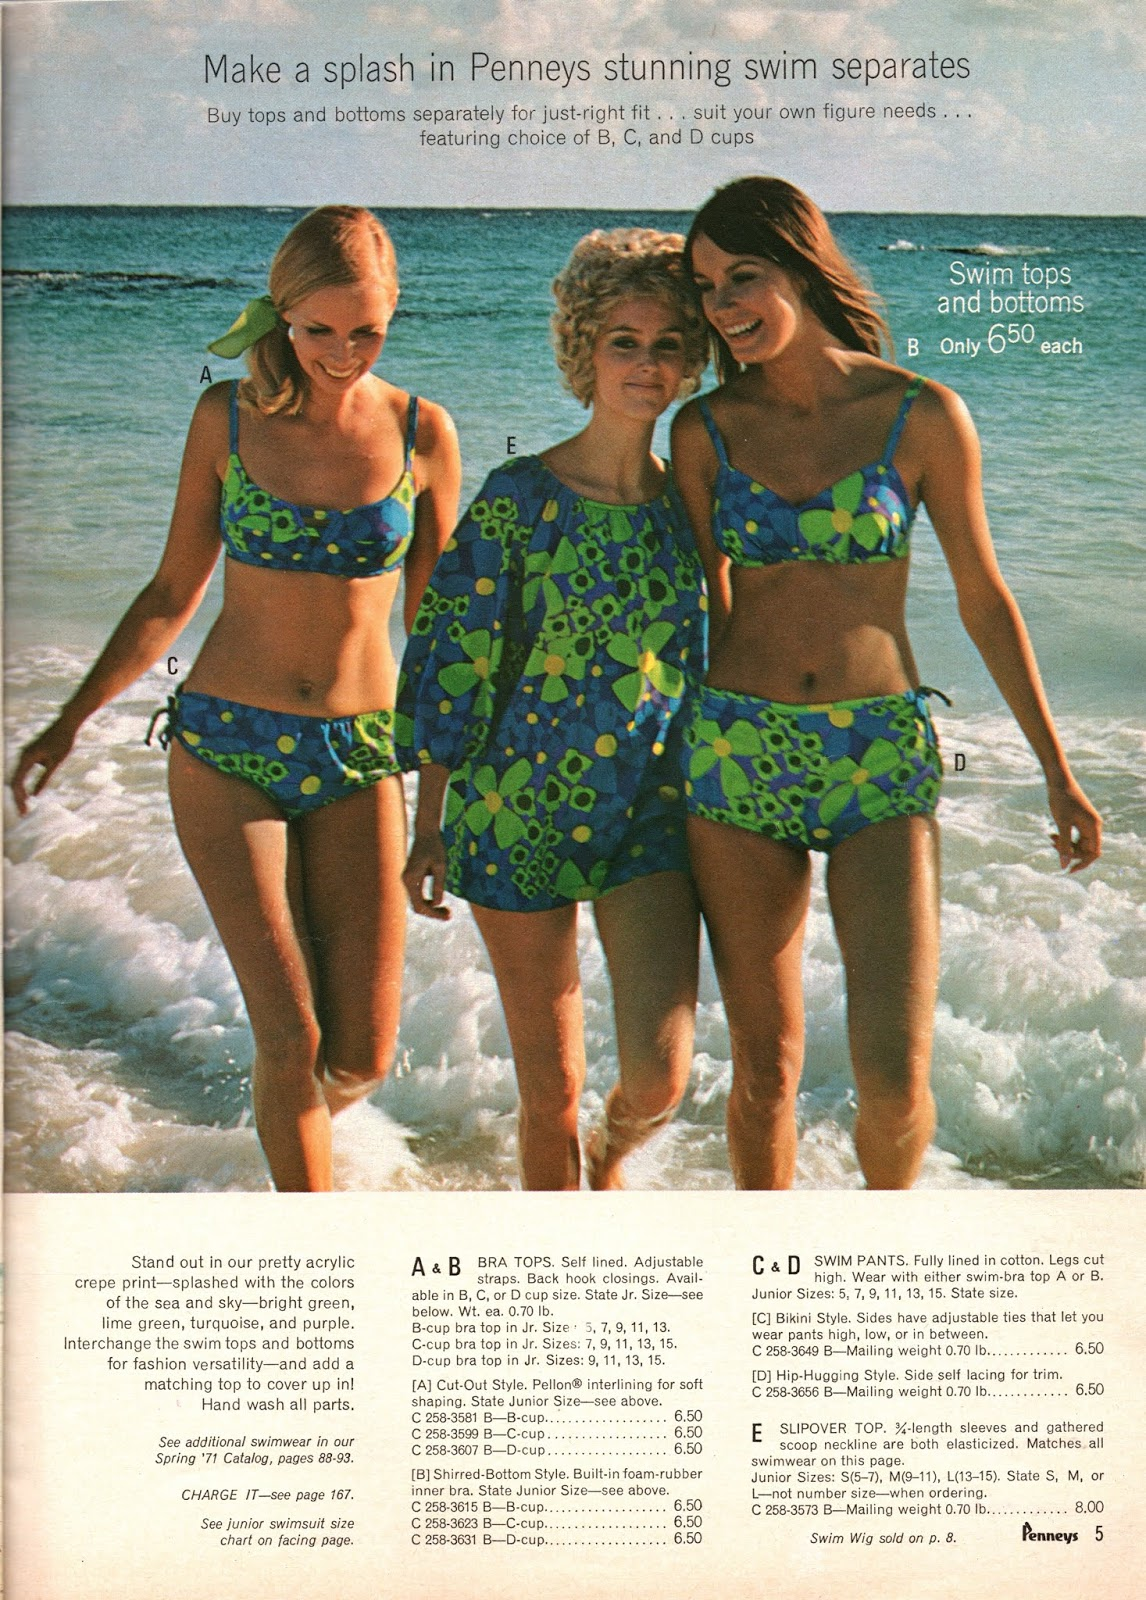 1490e31516751 Nice swimsuits, but I'm not feeling that funky 70s vibe here.